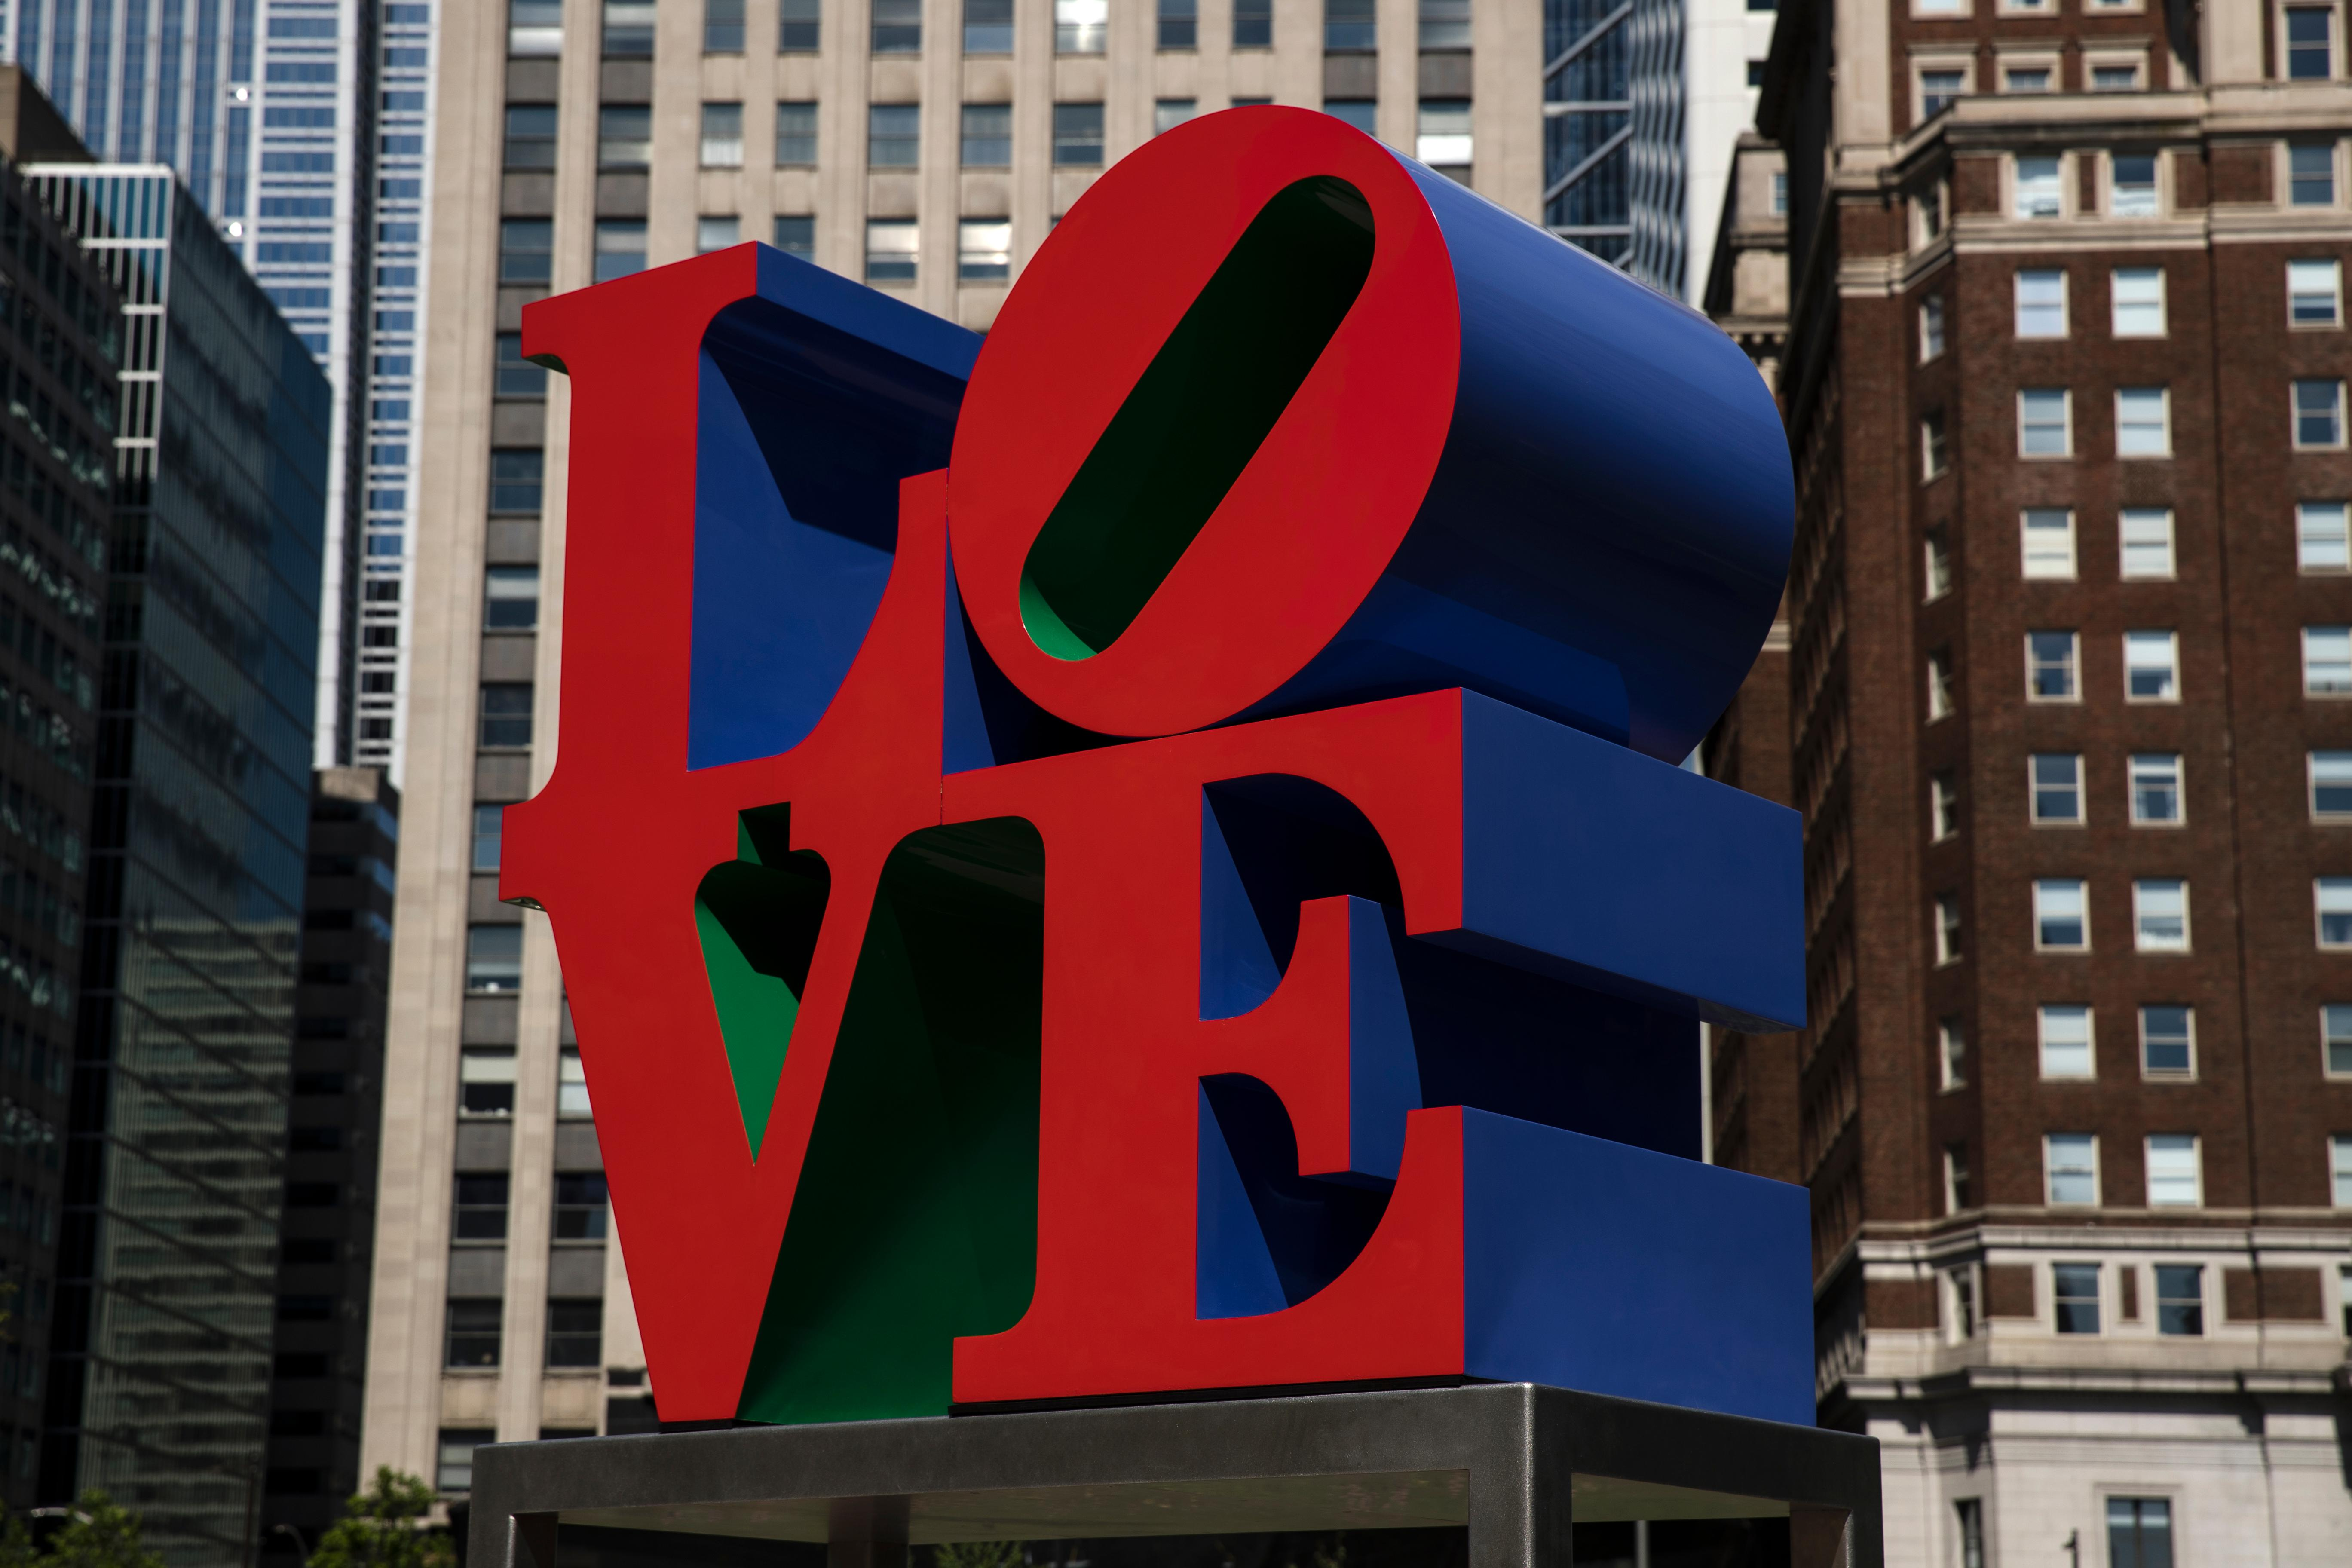 "Shown is the Robert Indiana sculpture ""LOVE"" in John F. Kennedy Plaza, commonly known as Love Park, in Philadelphia, Monday, May 21, 2018. Indiana, best known for his 1960s LOVE series, died from respiratory failure Saturday, May 19, 2018, at his home in Maine, Indiana's attorney said. He was 89. (AP Photo/Matt Rourke)"